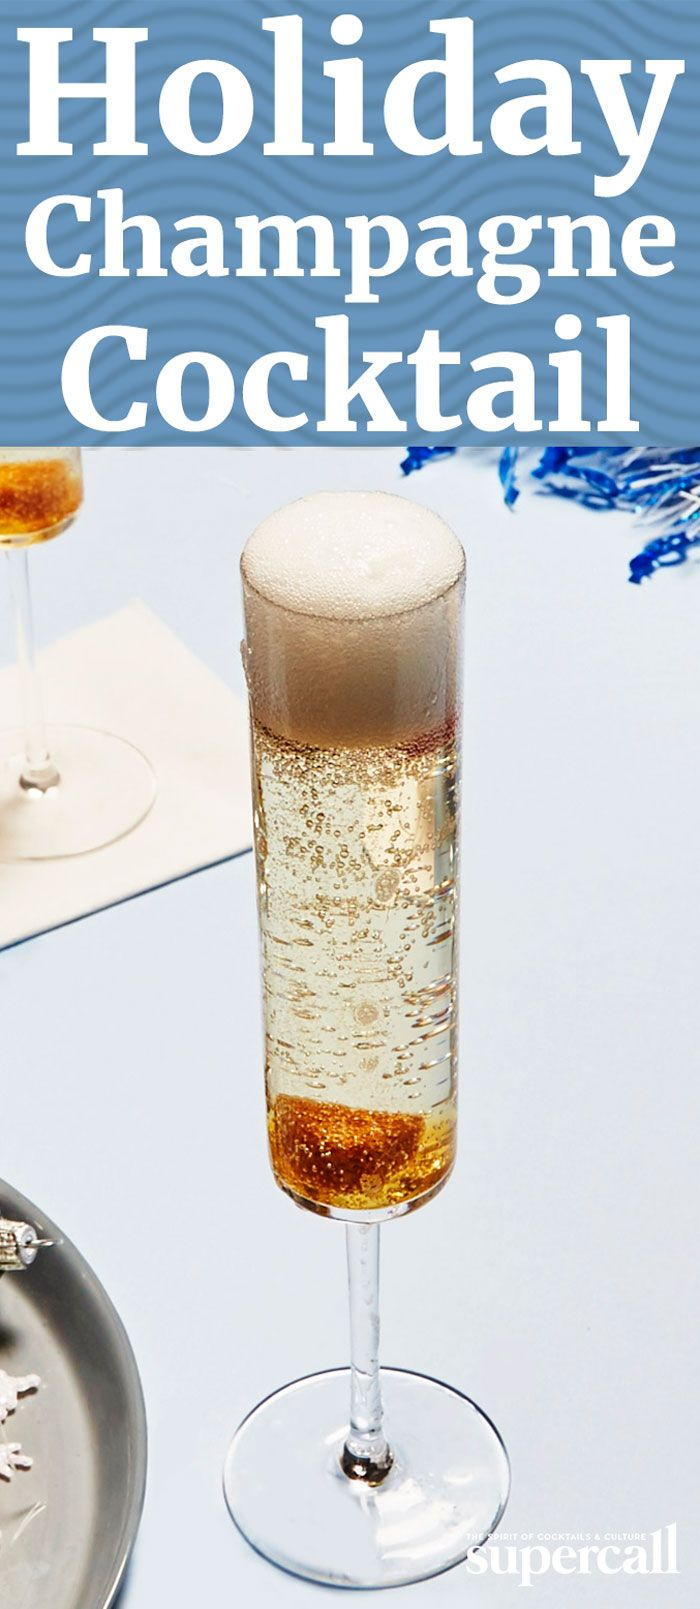 Inspired by the Champagne Cocktail, this effervescent tipple is crisp and delightful. Made with apple brandy (buy Calavados if you're feeling fancy) and a demerara sugar cube soaked with Nocino (an ancient italian liqueur made from green walnuts), it has a fruit-forward richness.